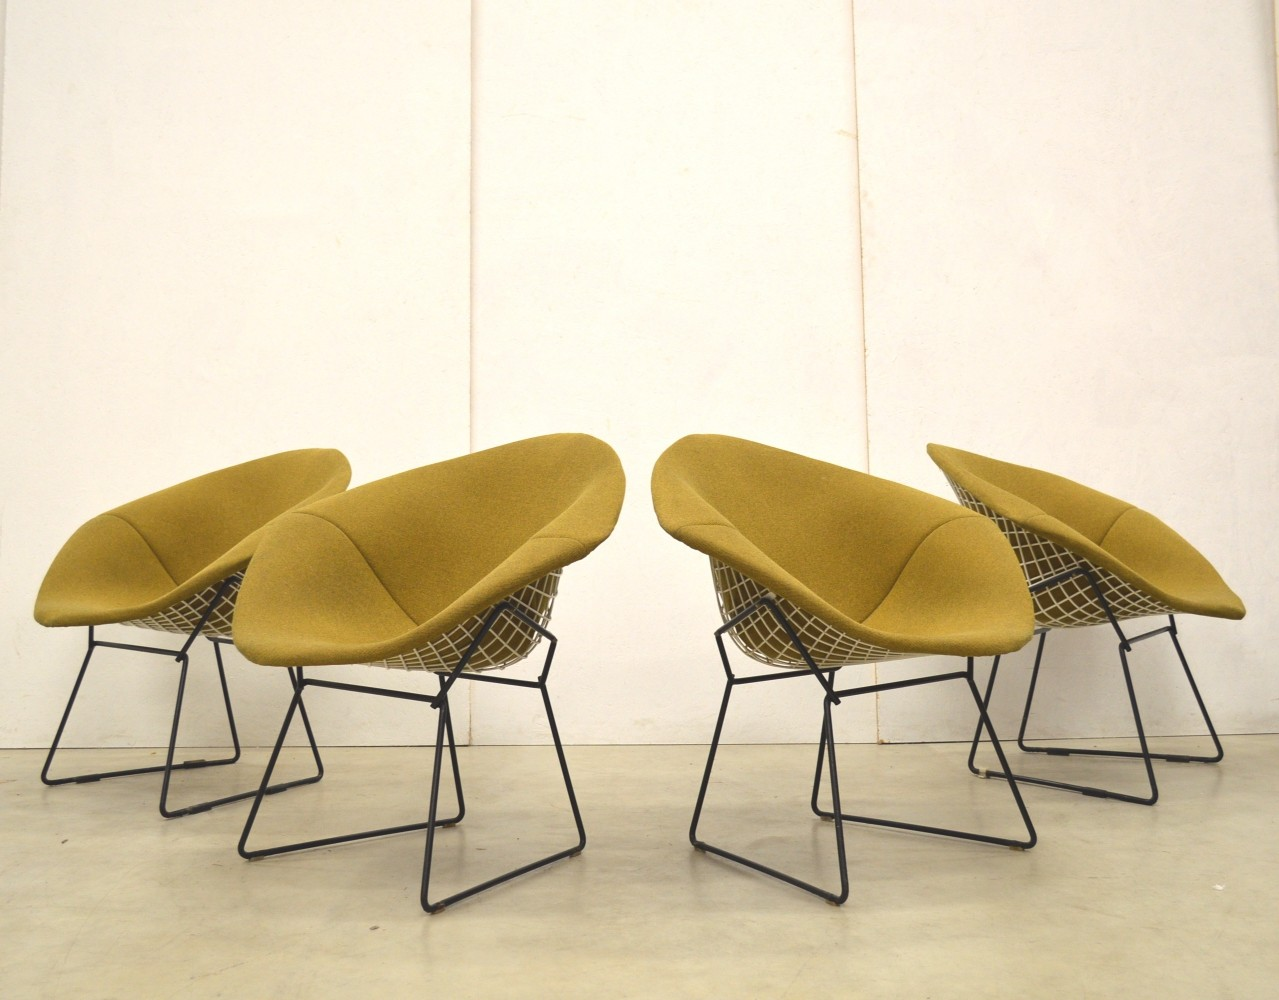 4 x Diamond lounge chair by Harry Bertoia for Knoll, 1960s